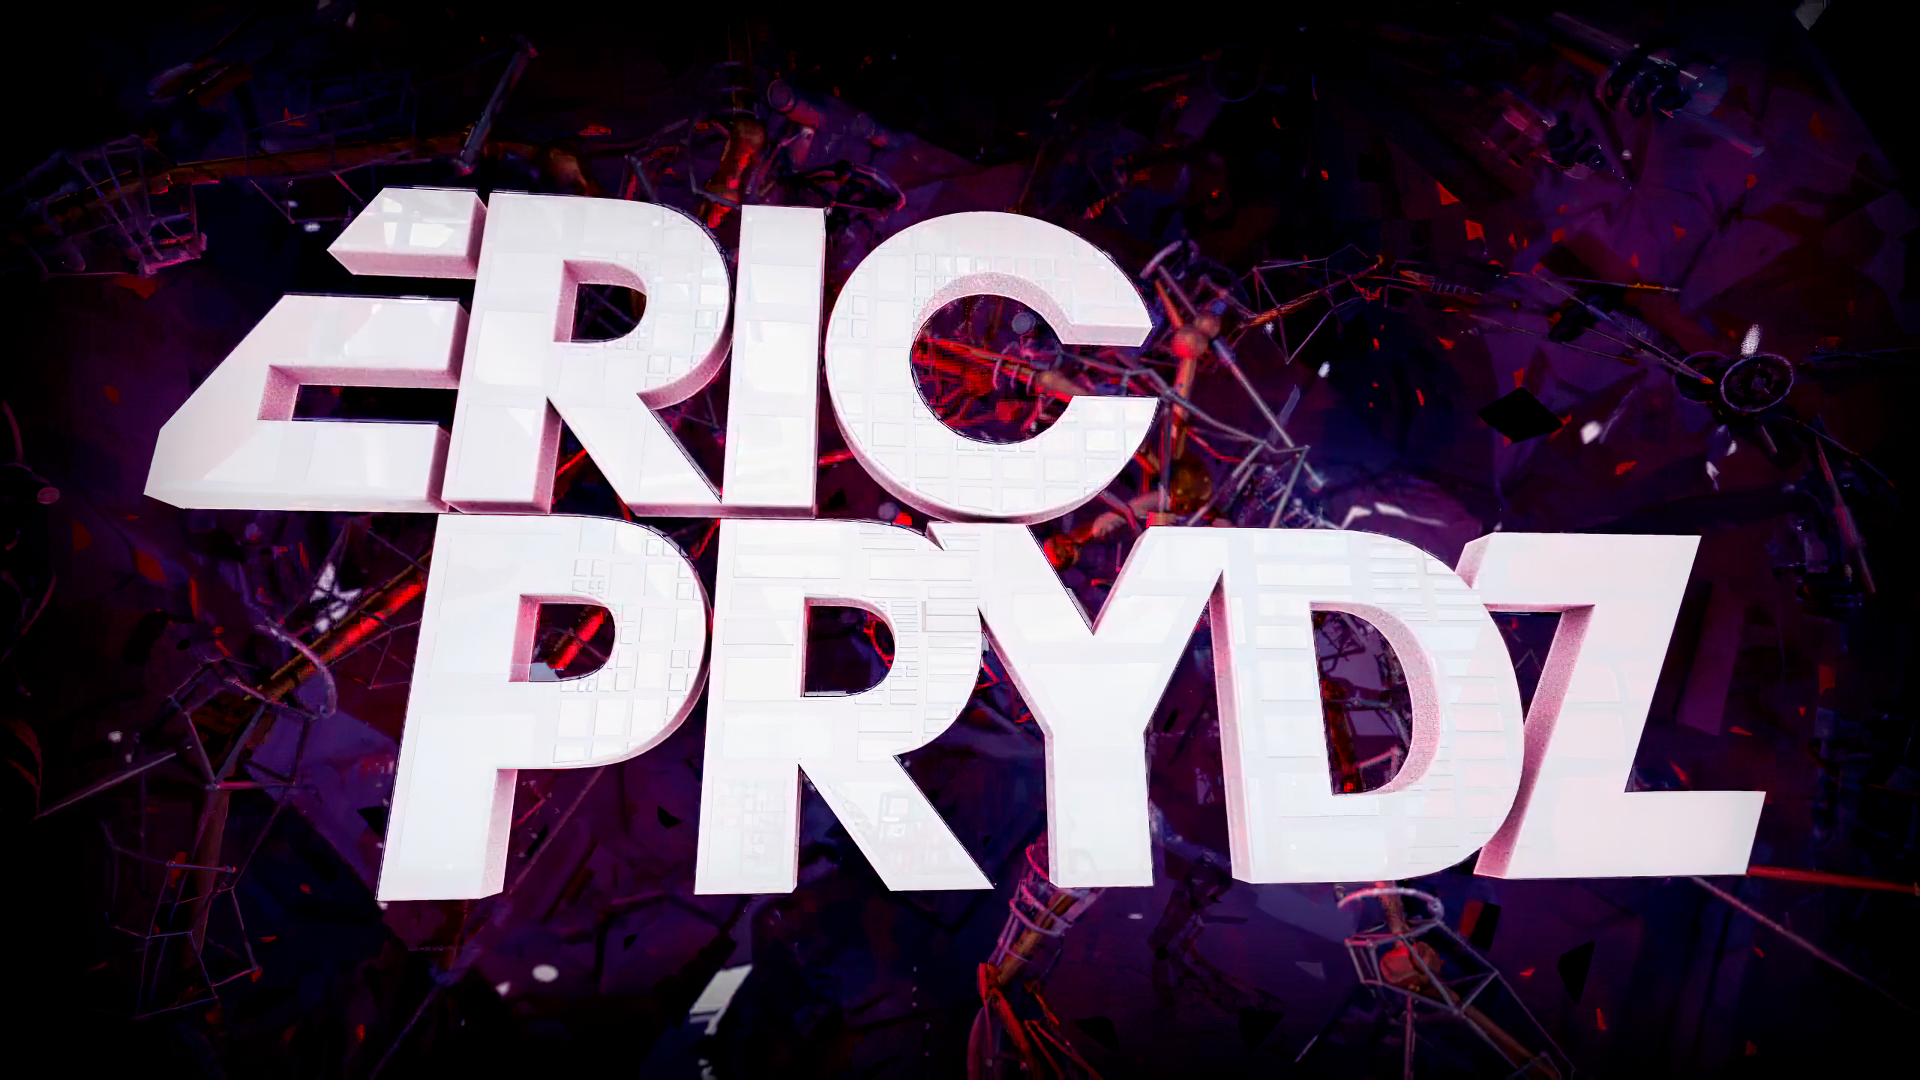 Eric Prydz Concert Intro Animation